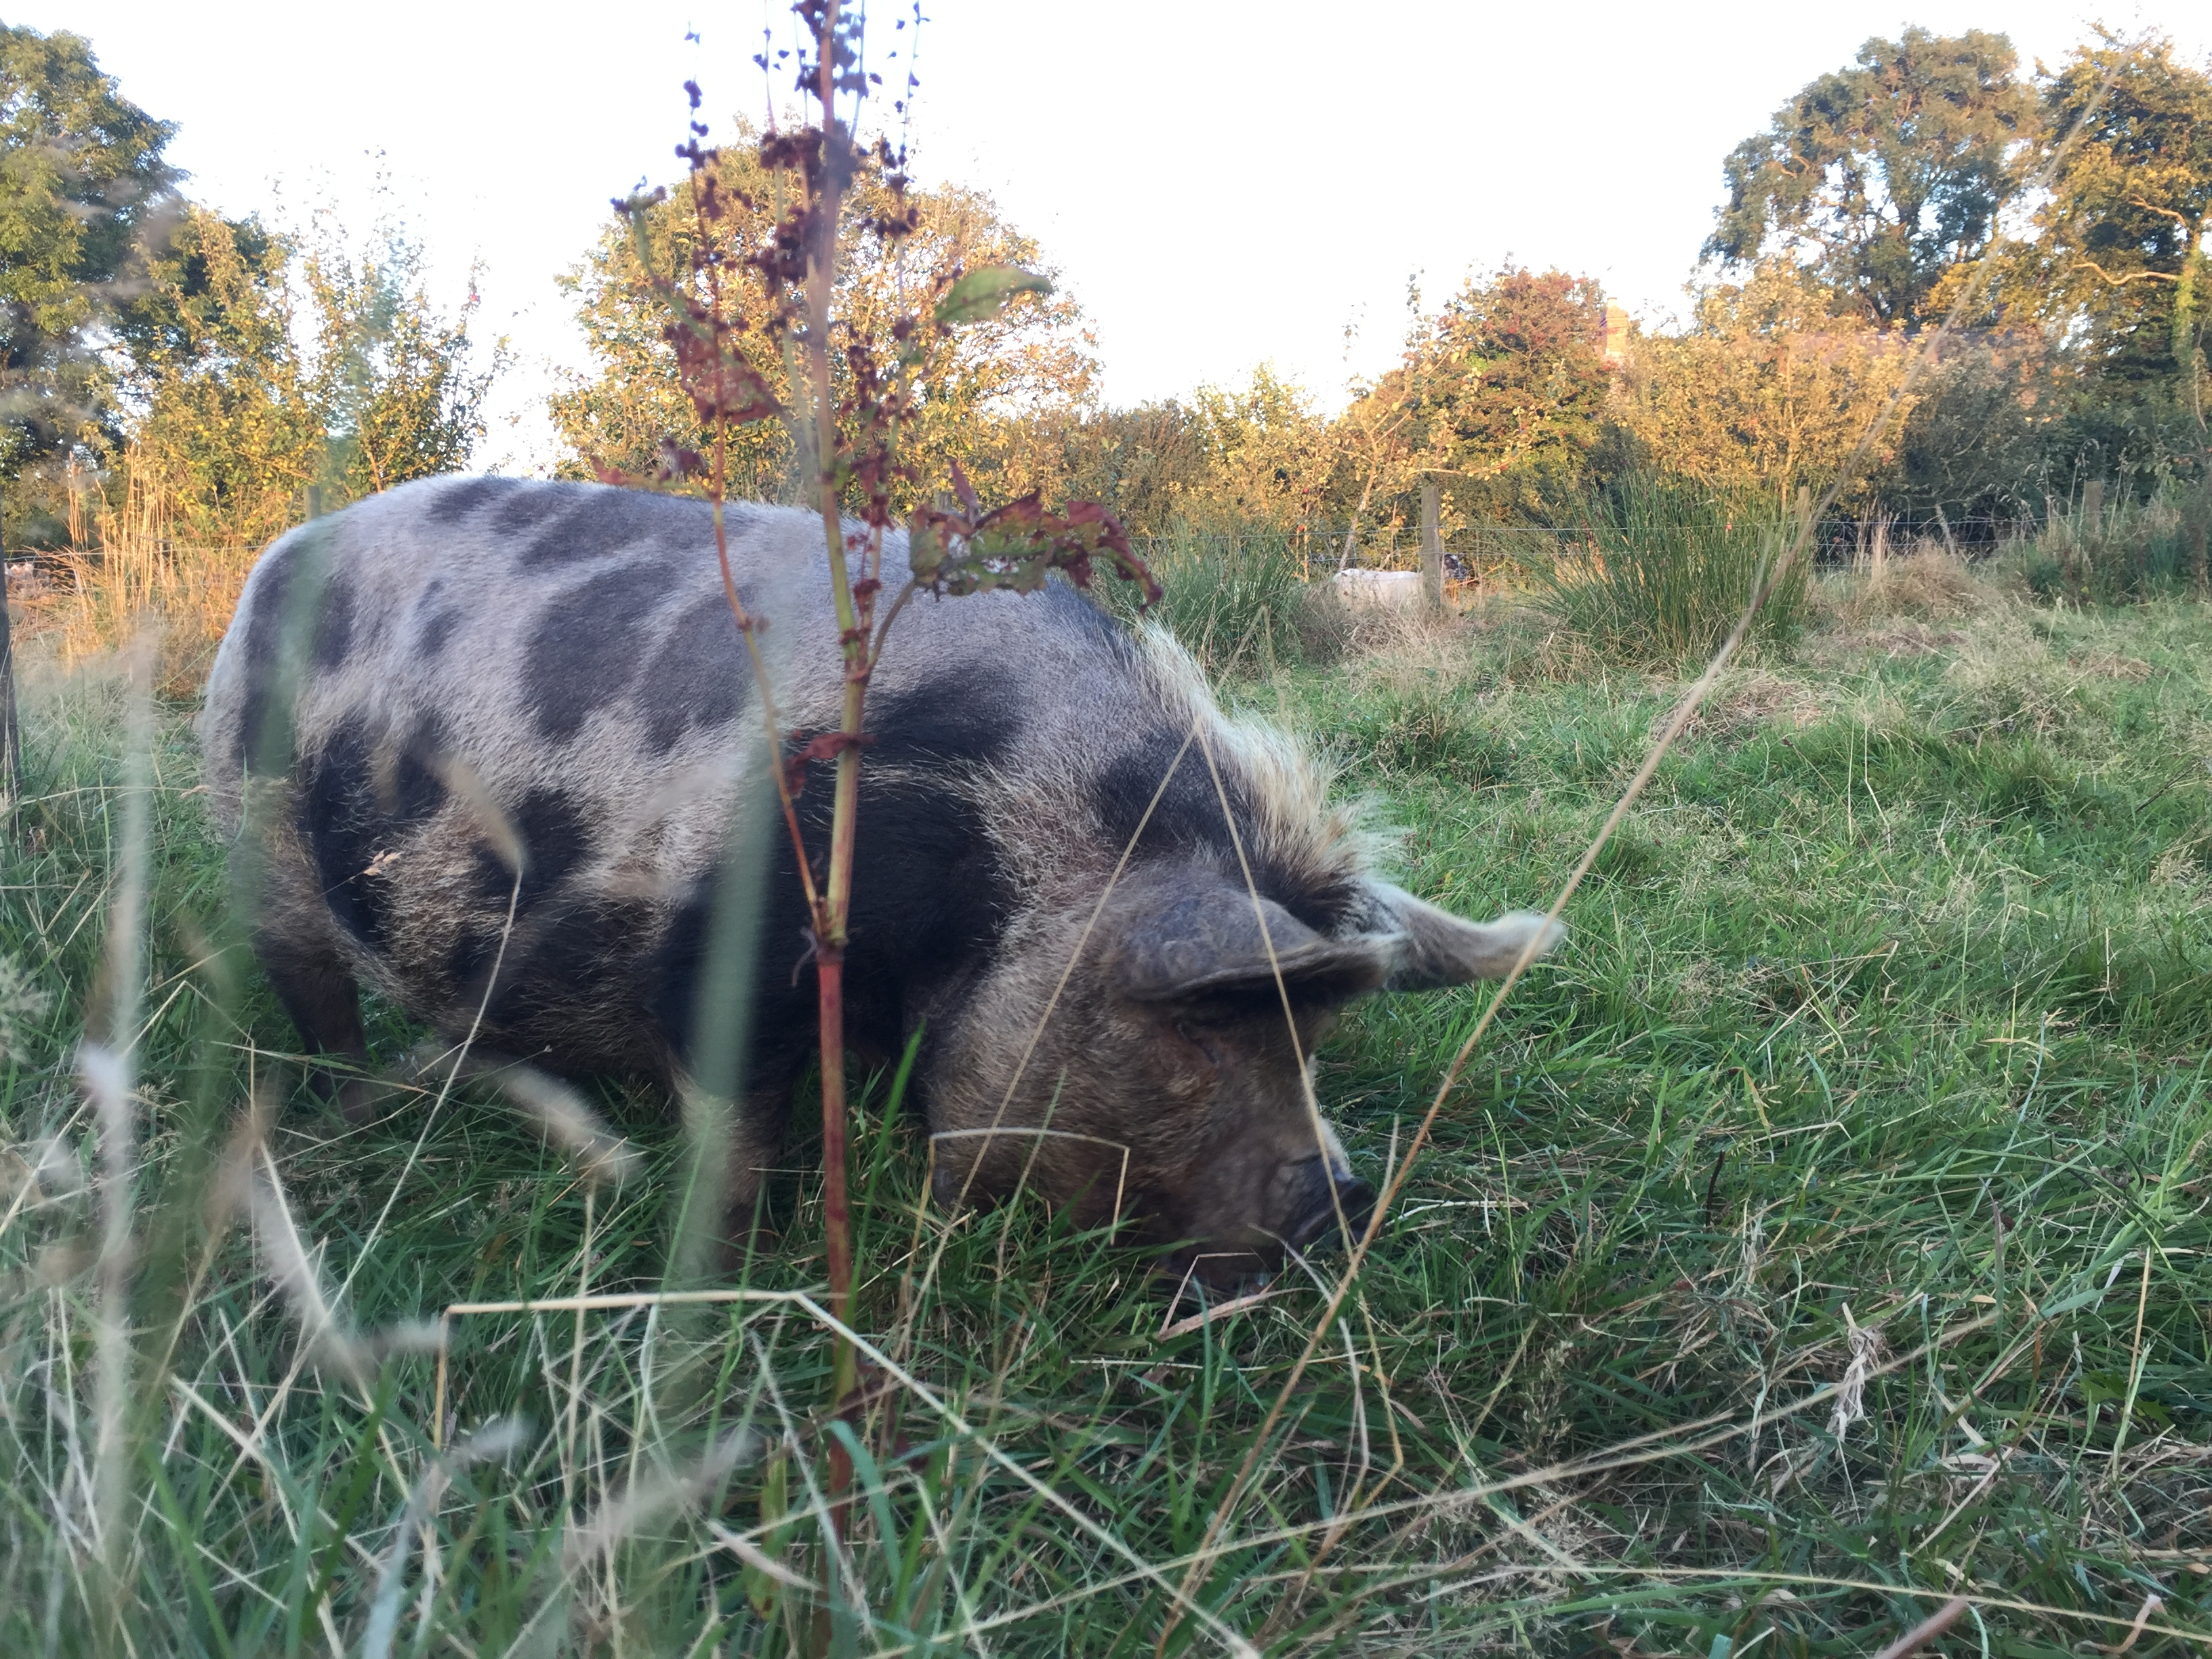 Daisy the pig